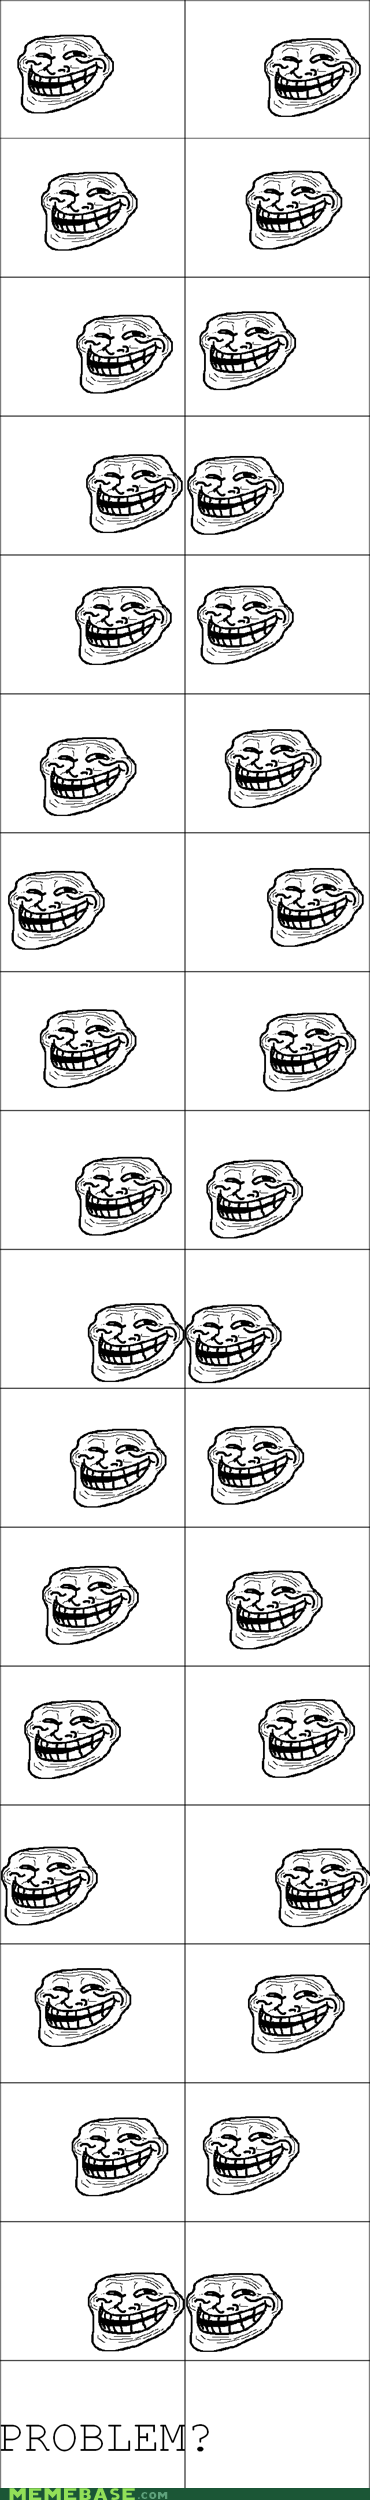 optical illusion problem Rage Comics troll face - 6037218560